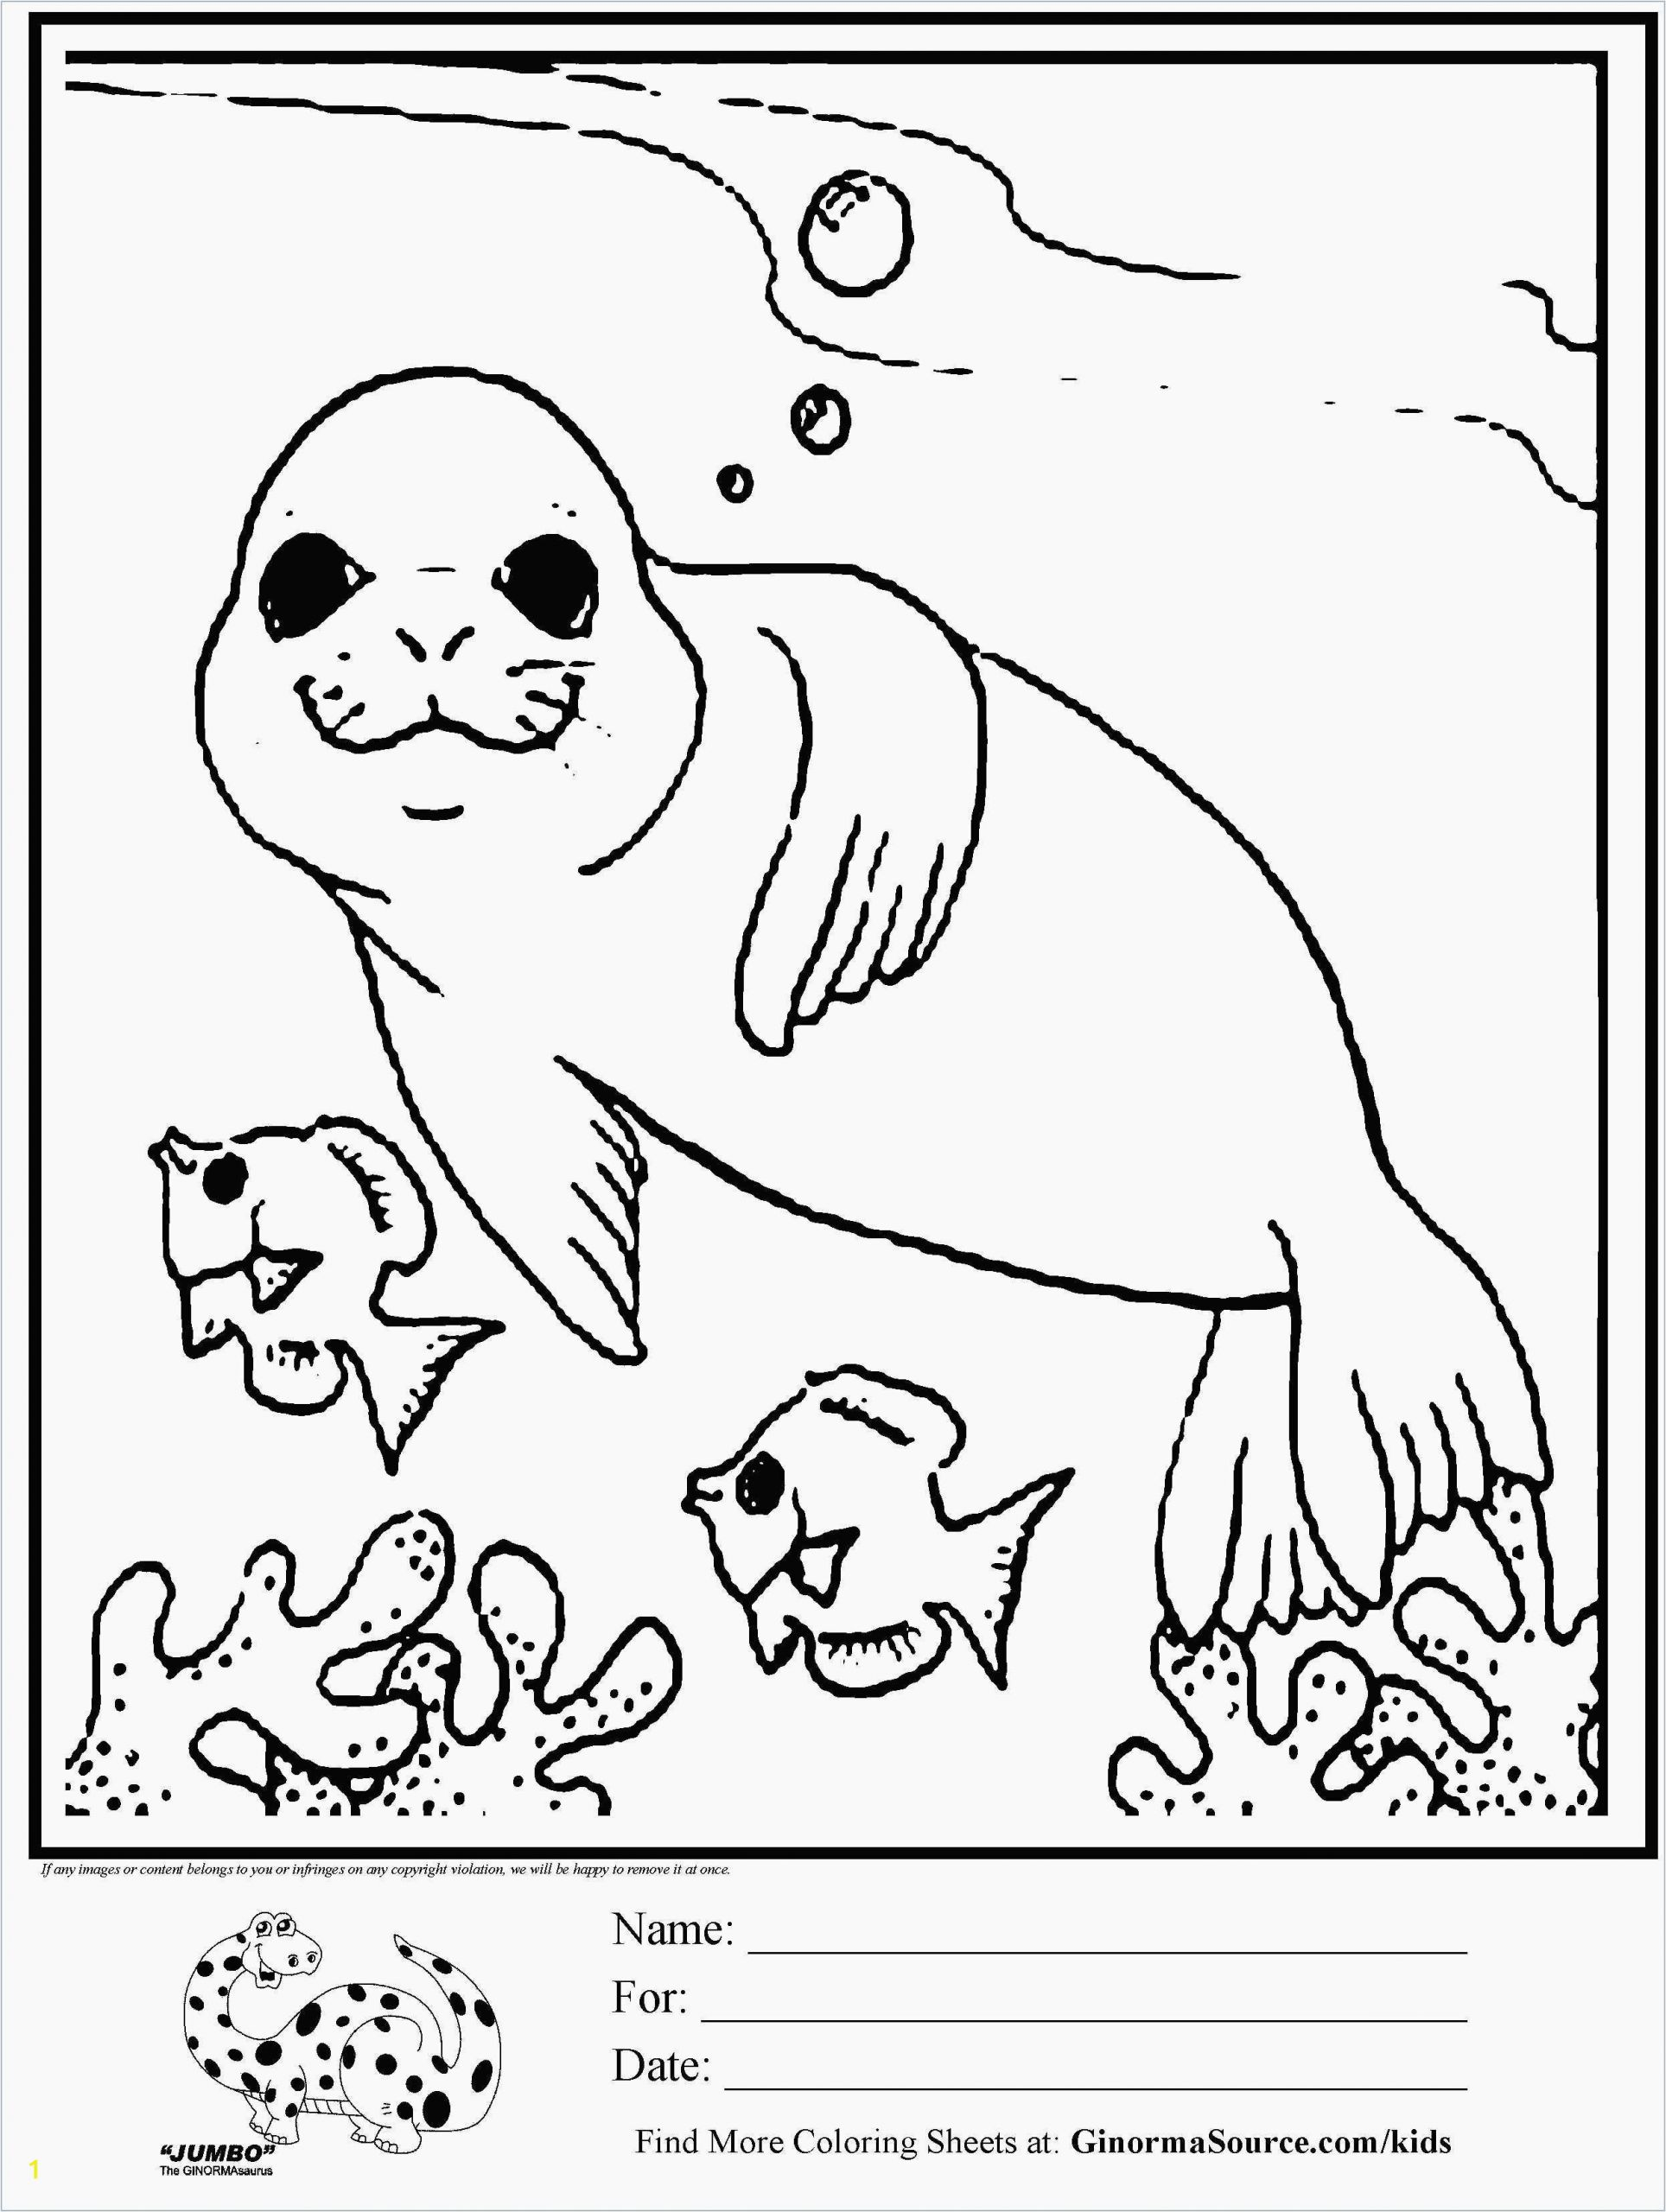 Happy Dog Coloring Pages Best Coloring Fantastic Adult Books Animals asages